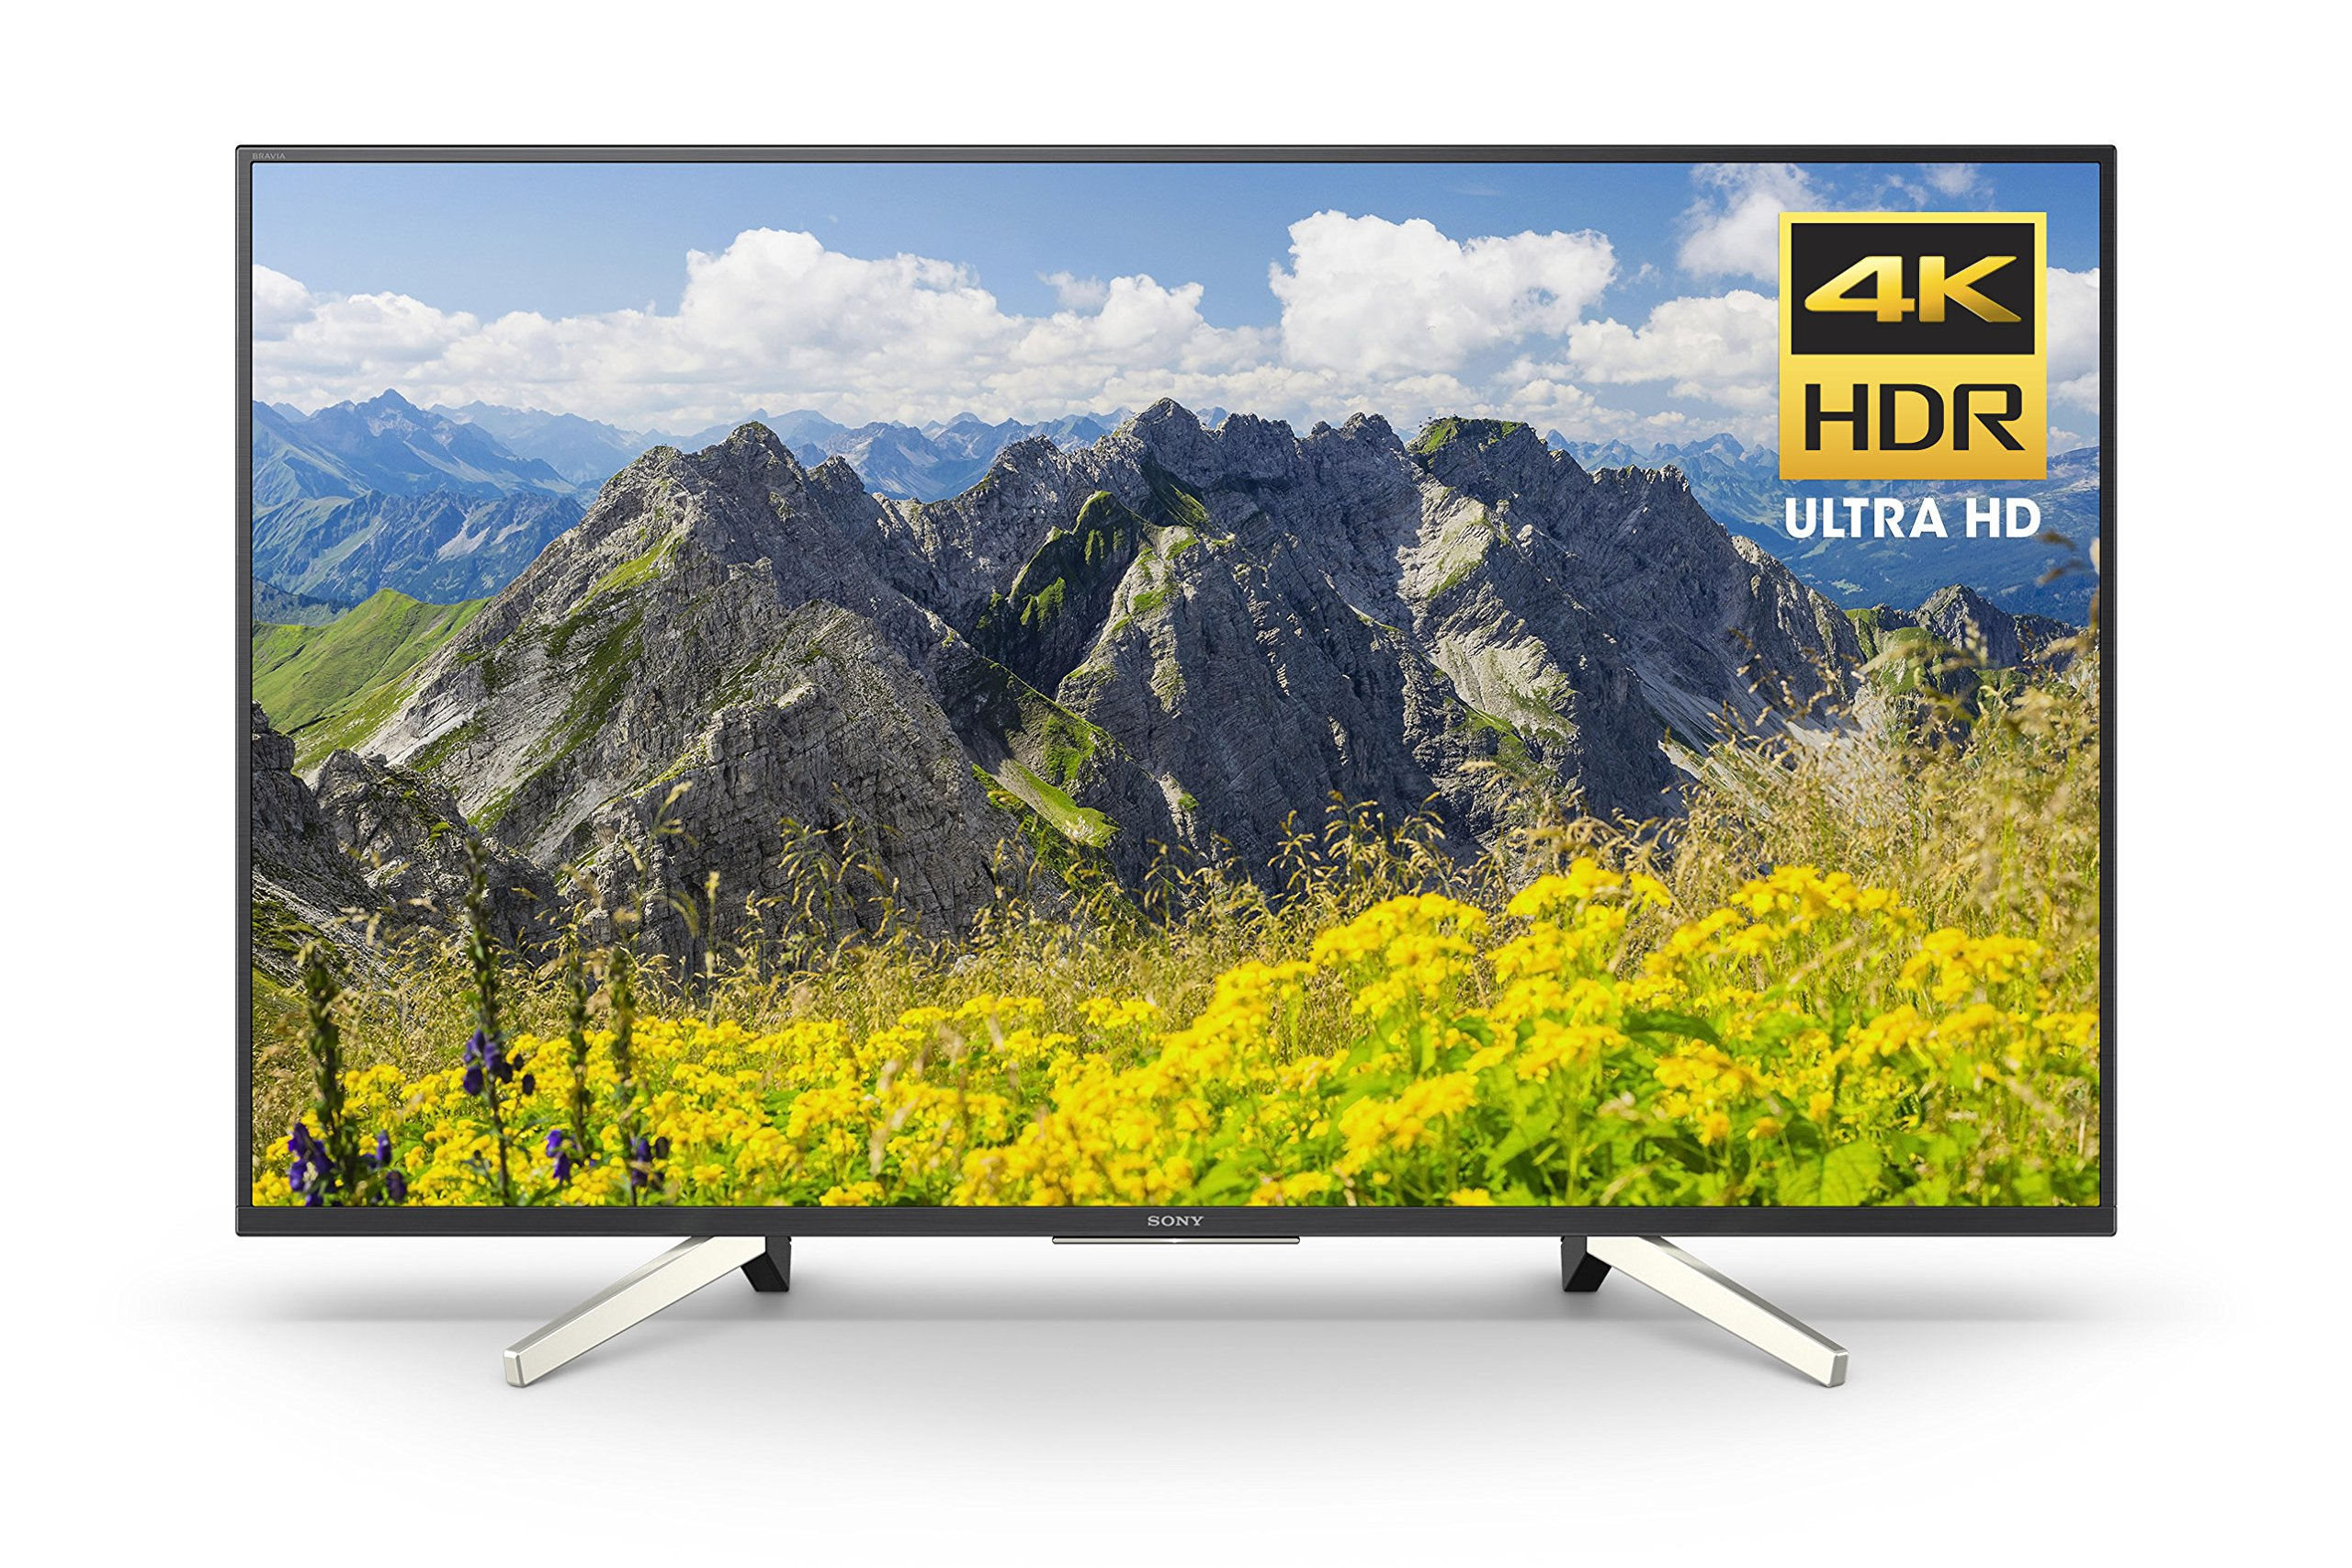 Sony KD49X750F 49-Inch 4K Ultra HD Smart LED TV